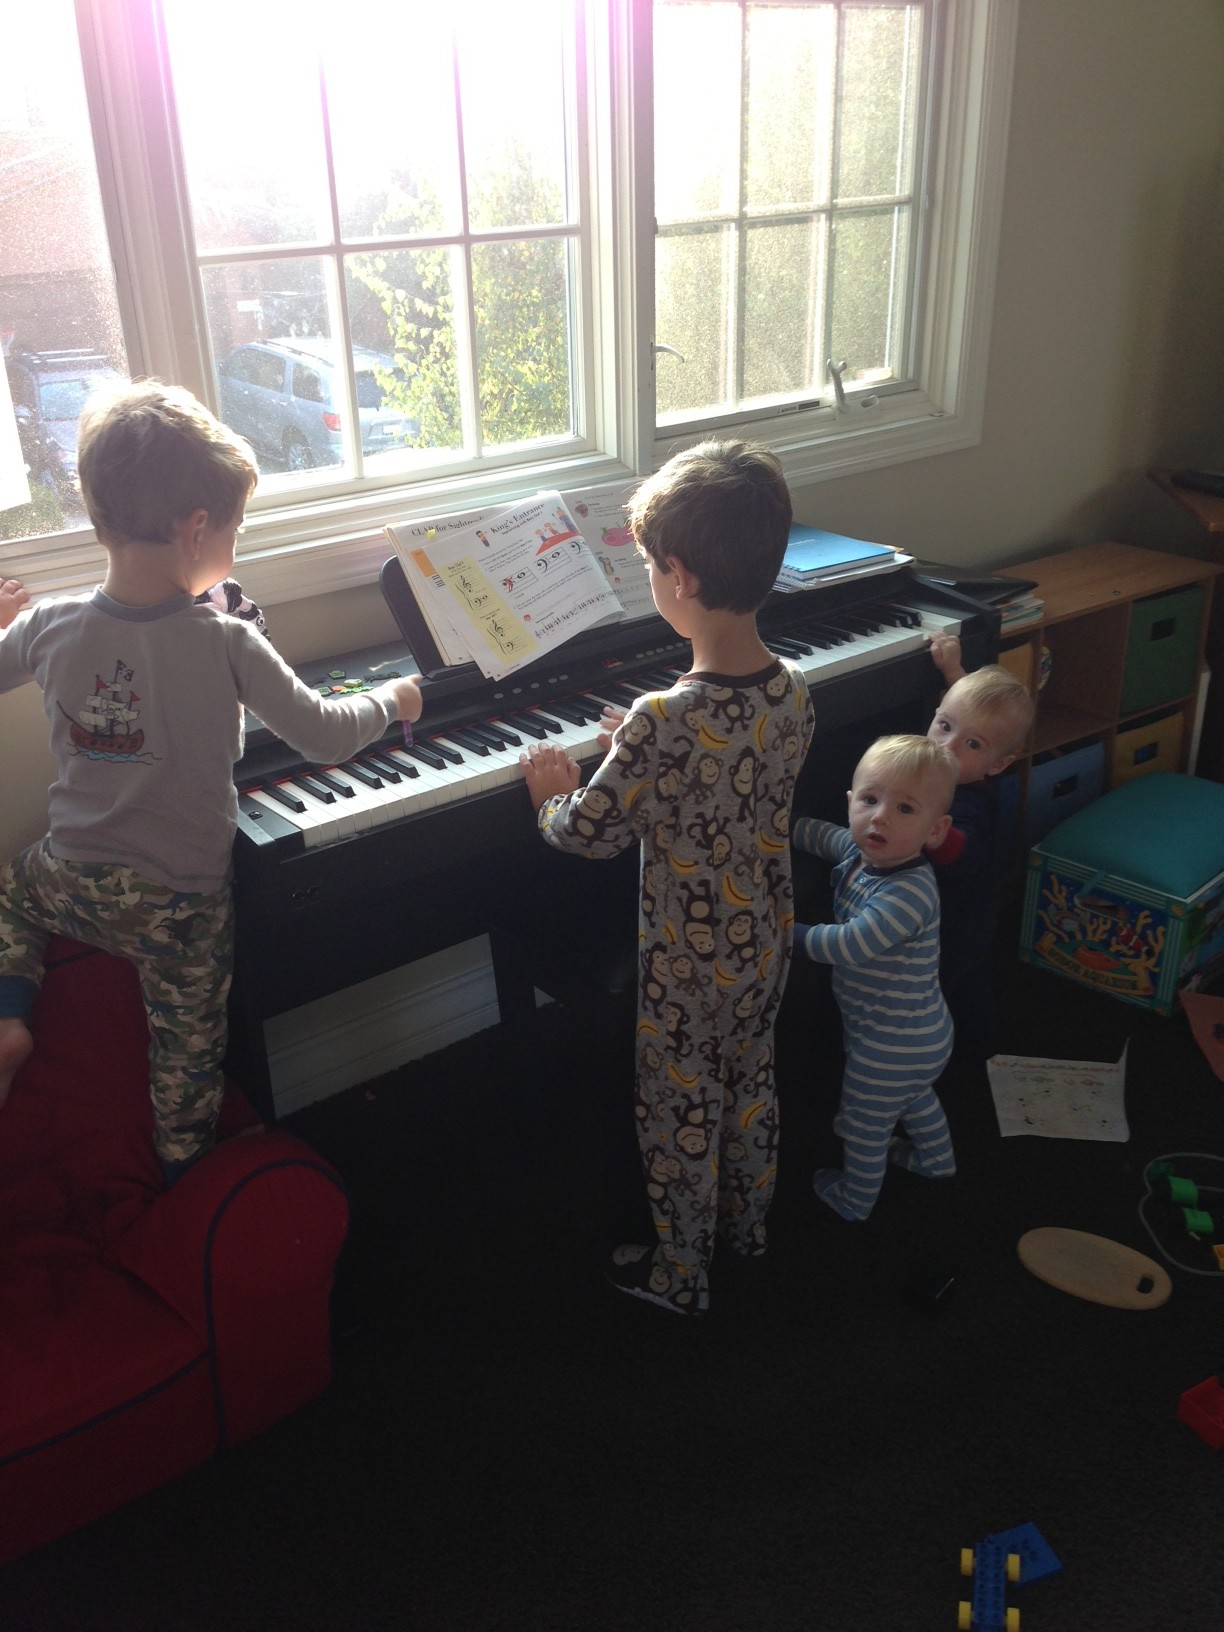 Jack Jonah Noah Gabe all playing piano 2012 nov